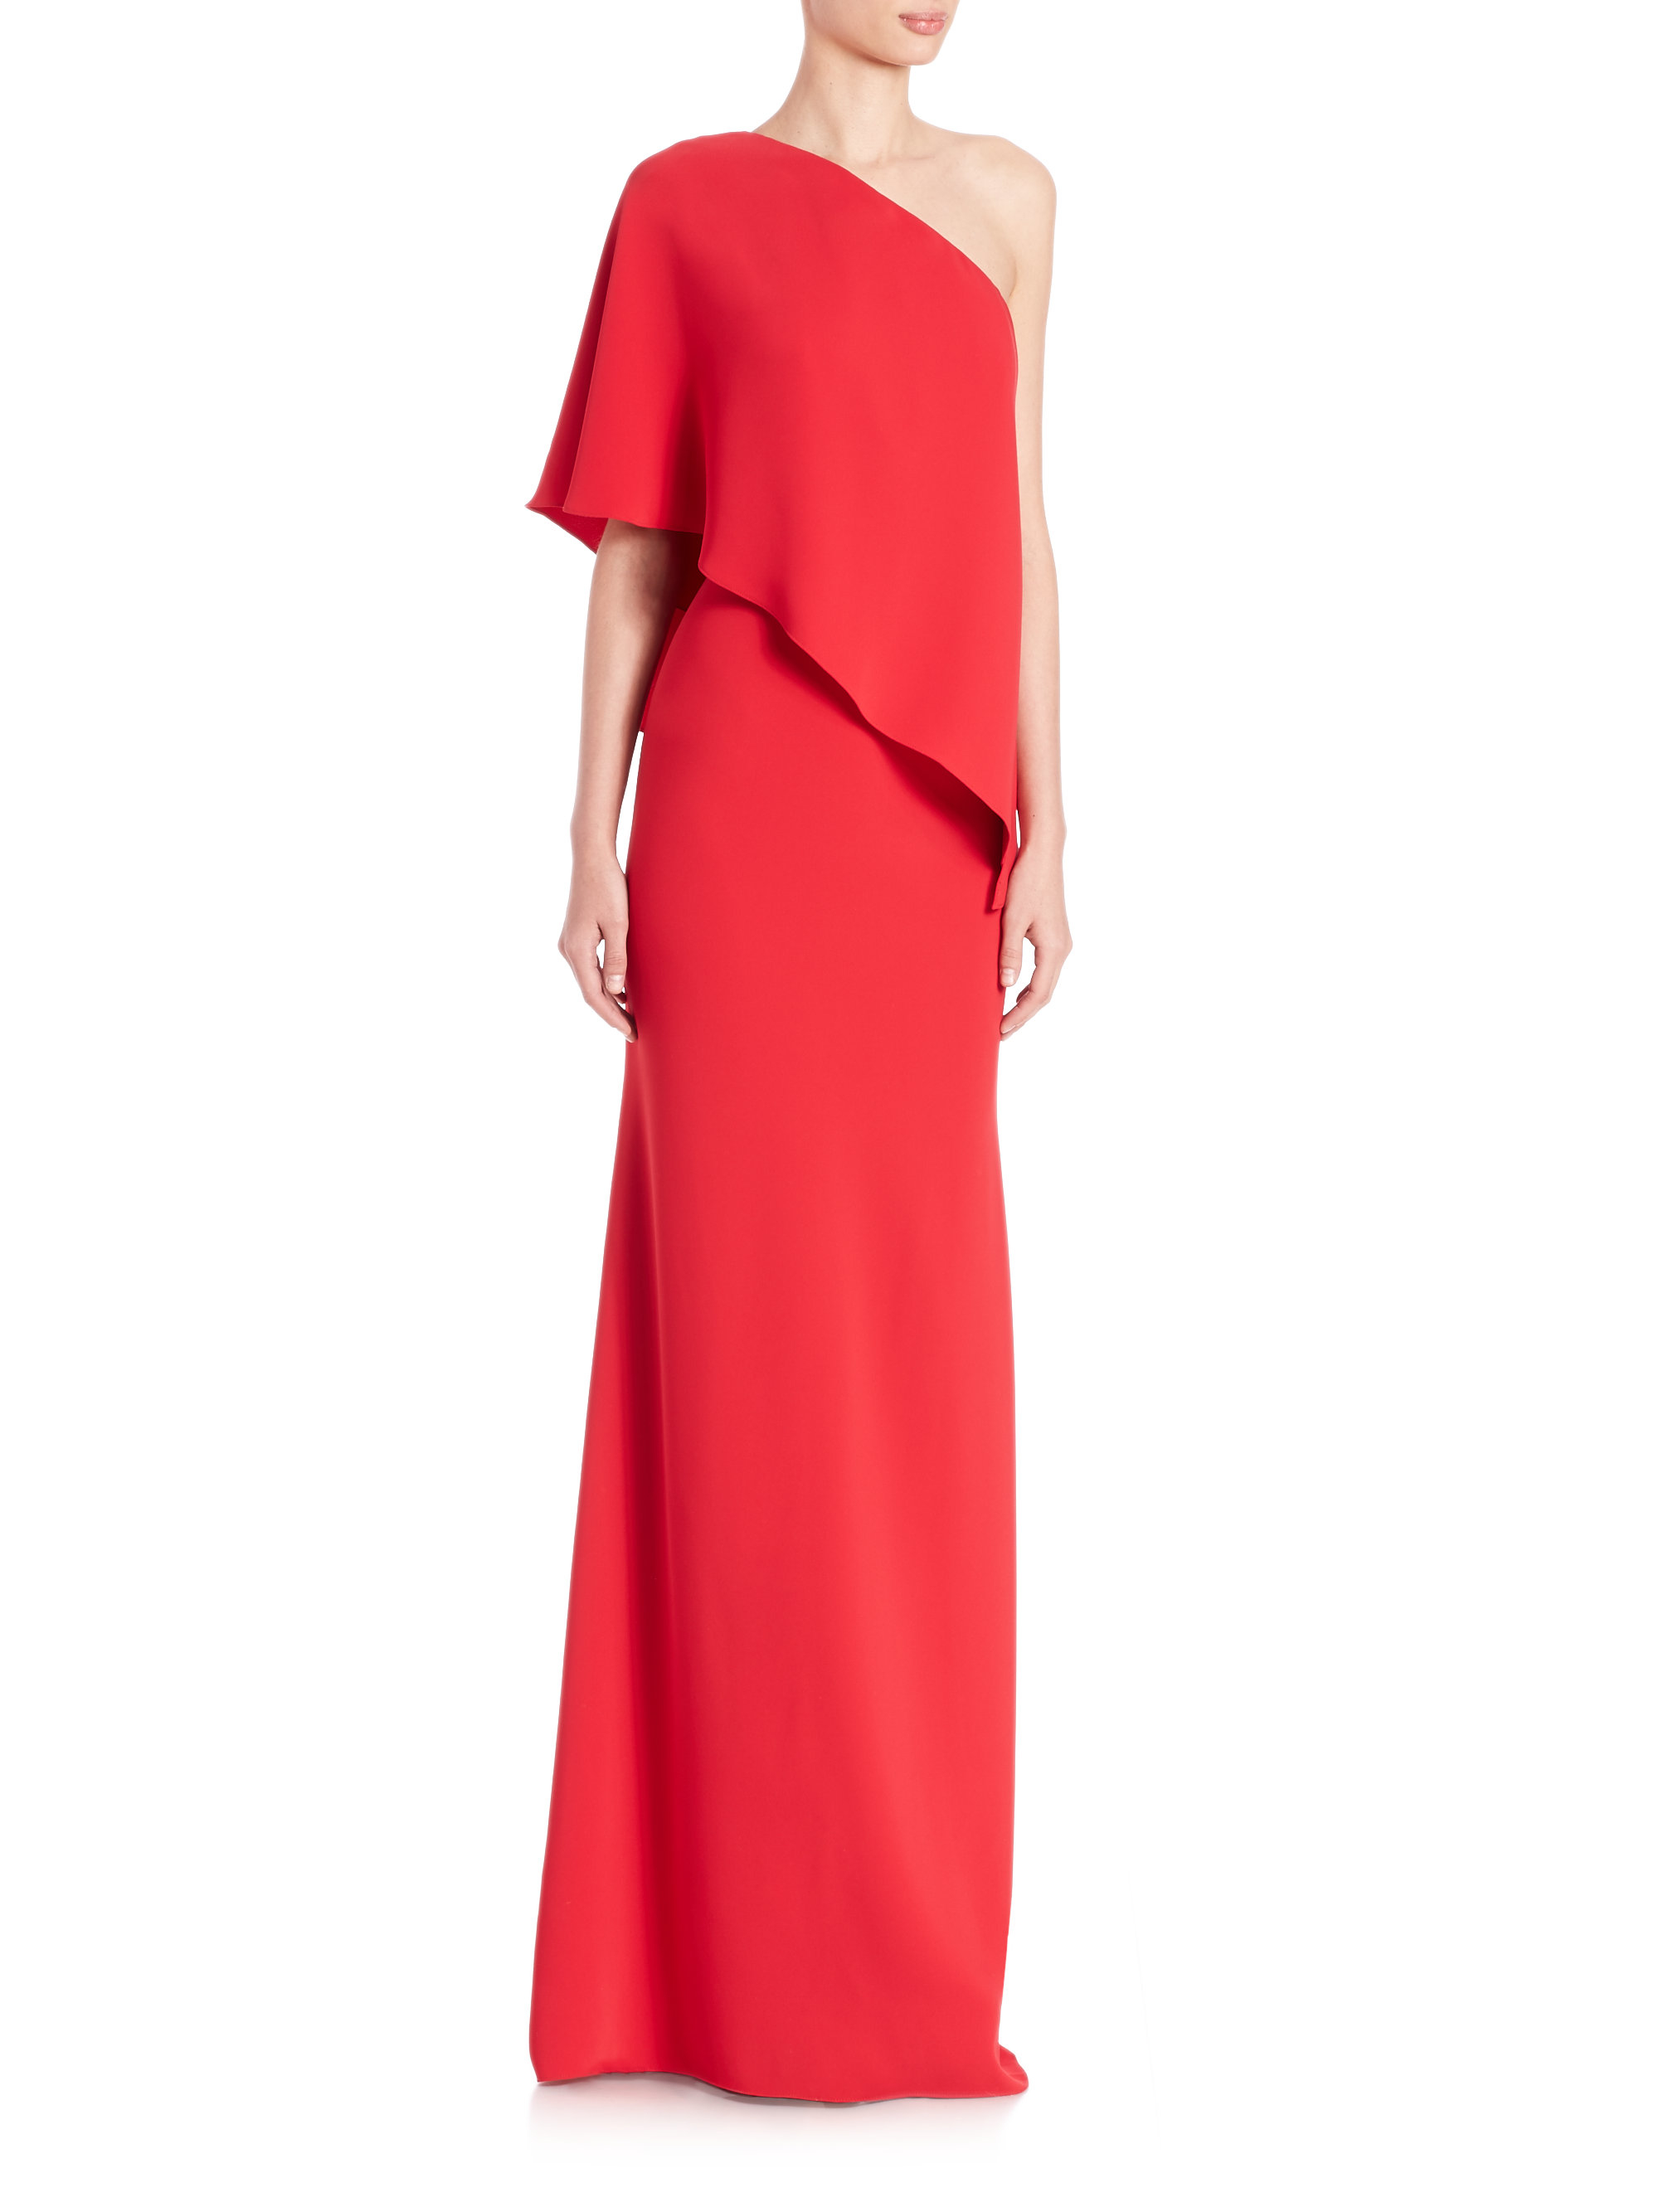 Lyst - Carmen Marc Valvo One-shoulder Crepe Maxi Gown in Red